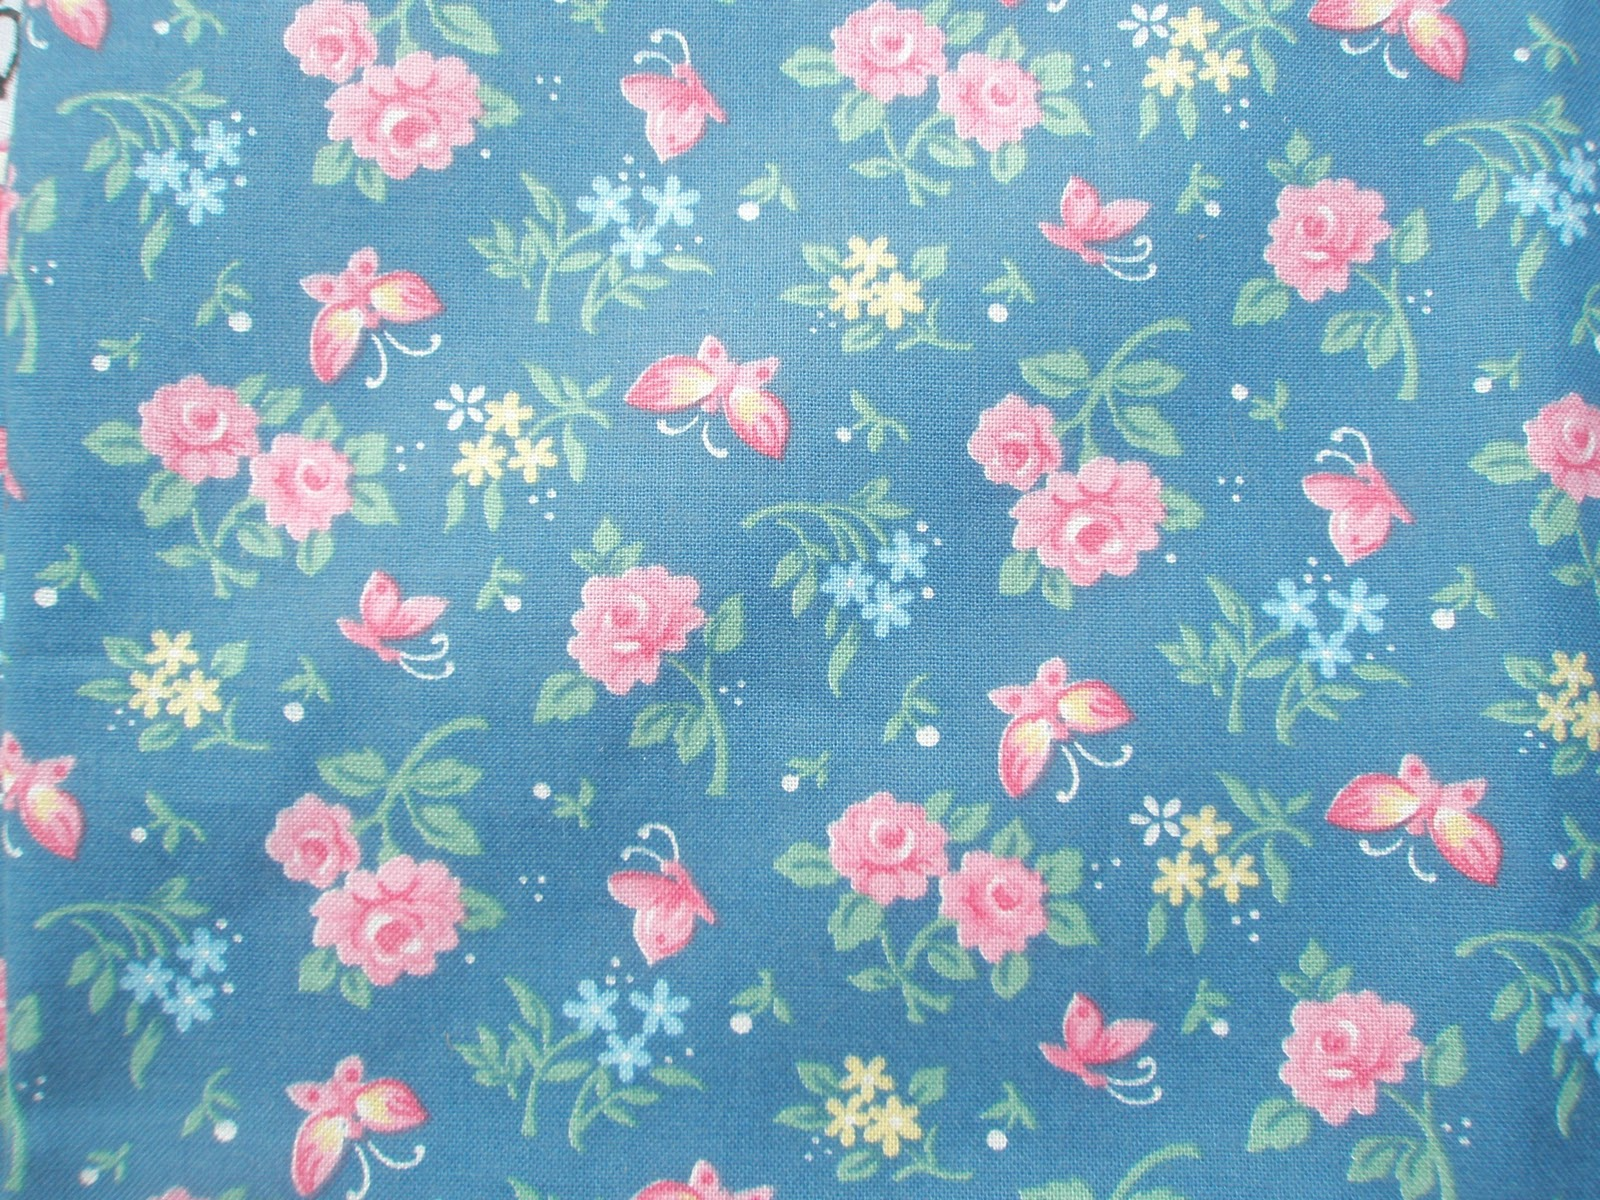 Vintage Floral Wallpaper Tumblr